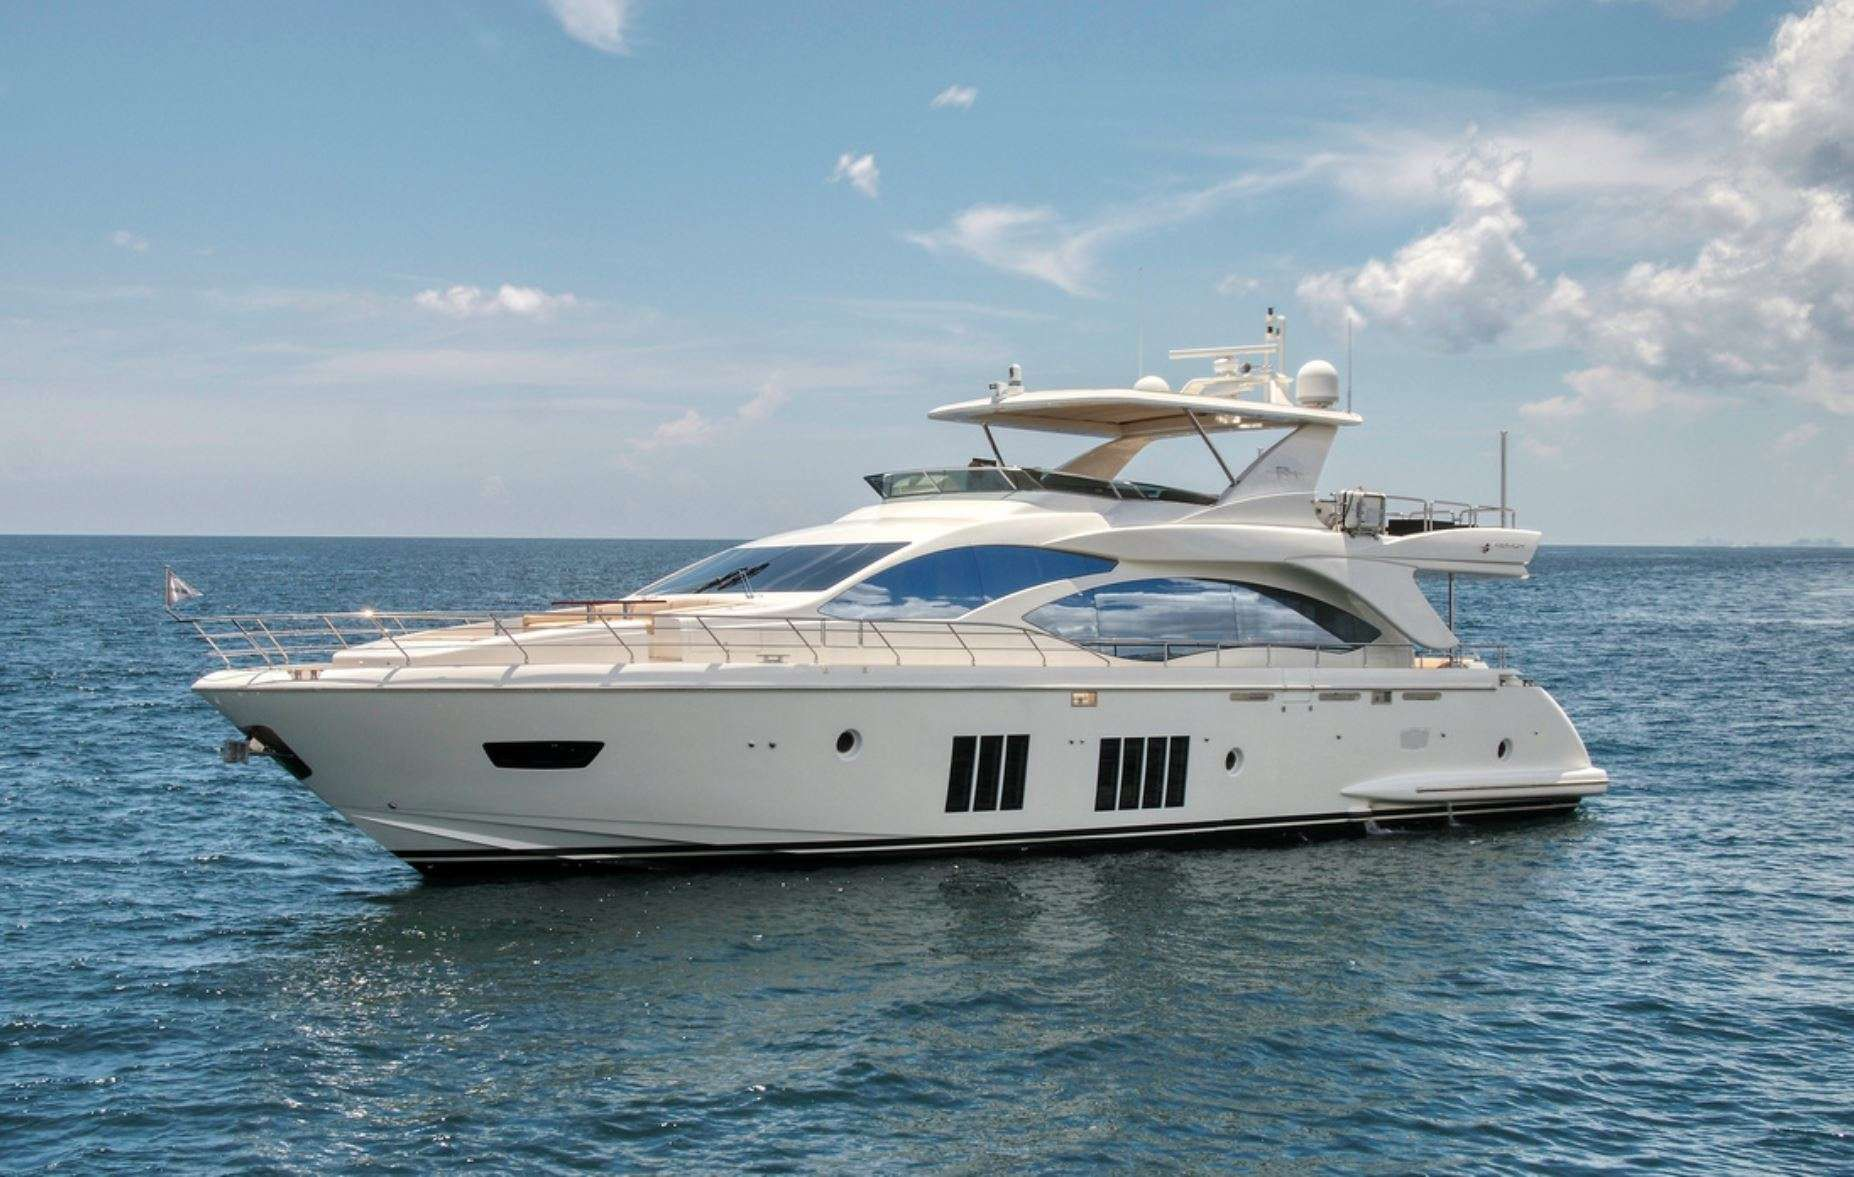 Valere Yacht Charter - Ritzy Charters